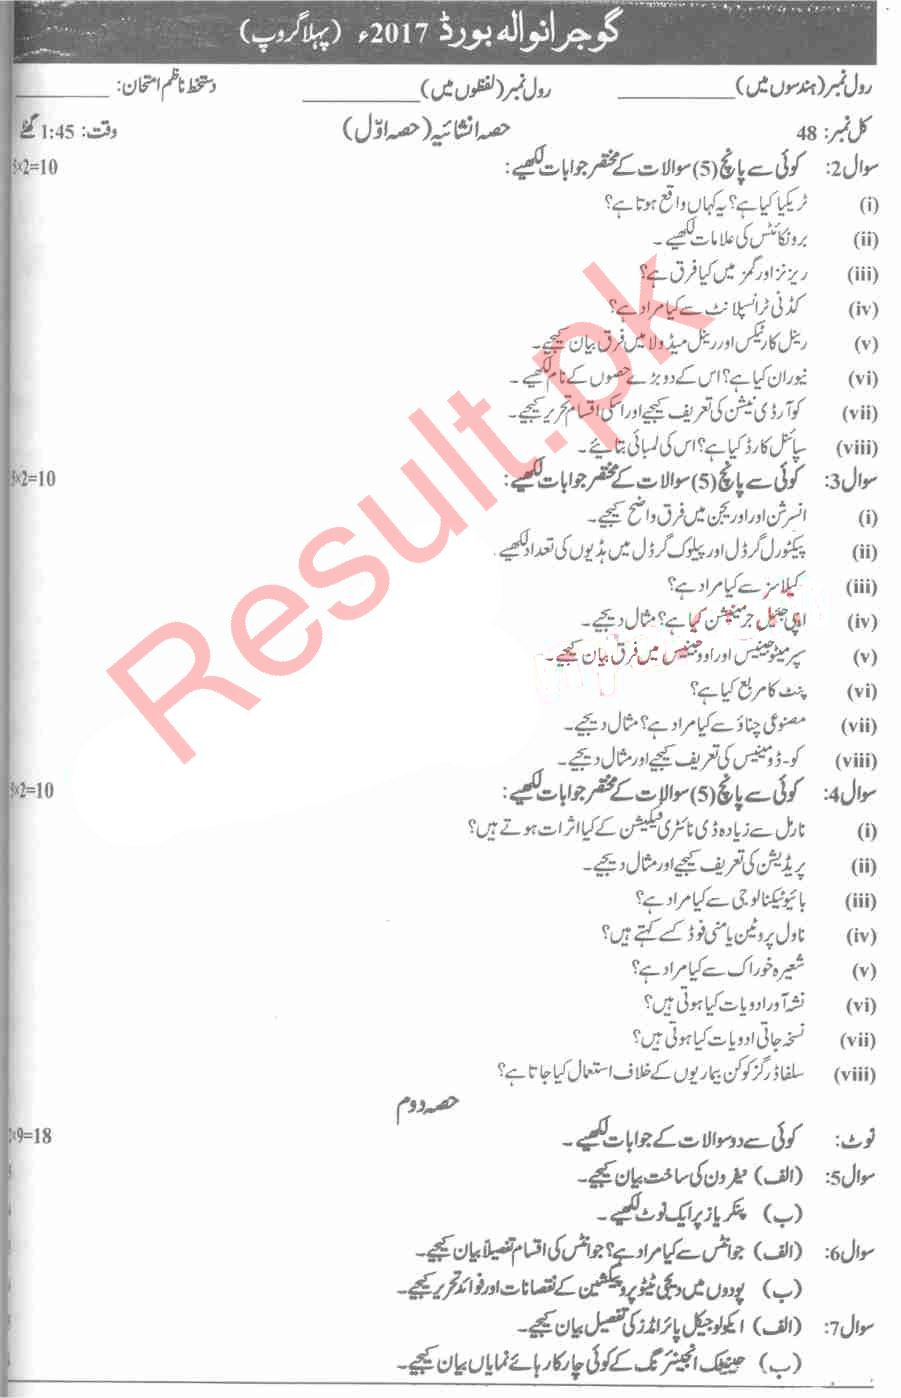 BISE Gujranwala Board Past Papers 2018 Matric, SSC Part 1